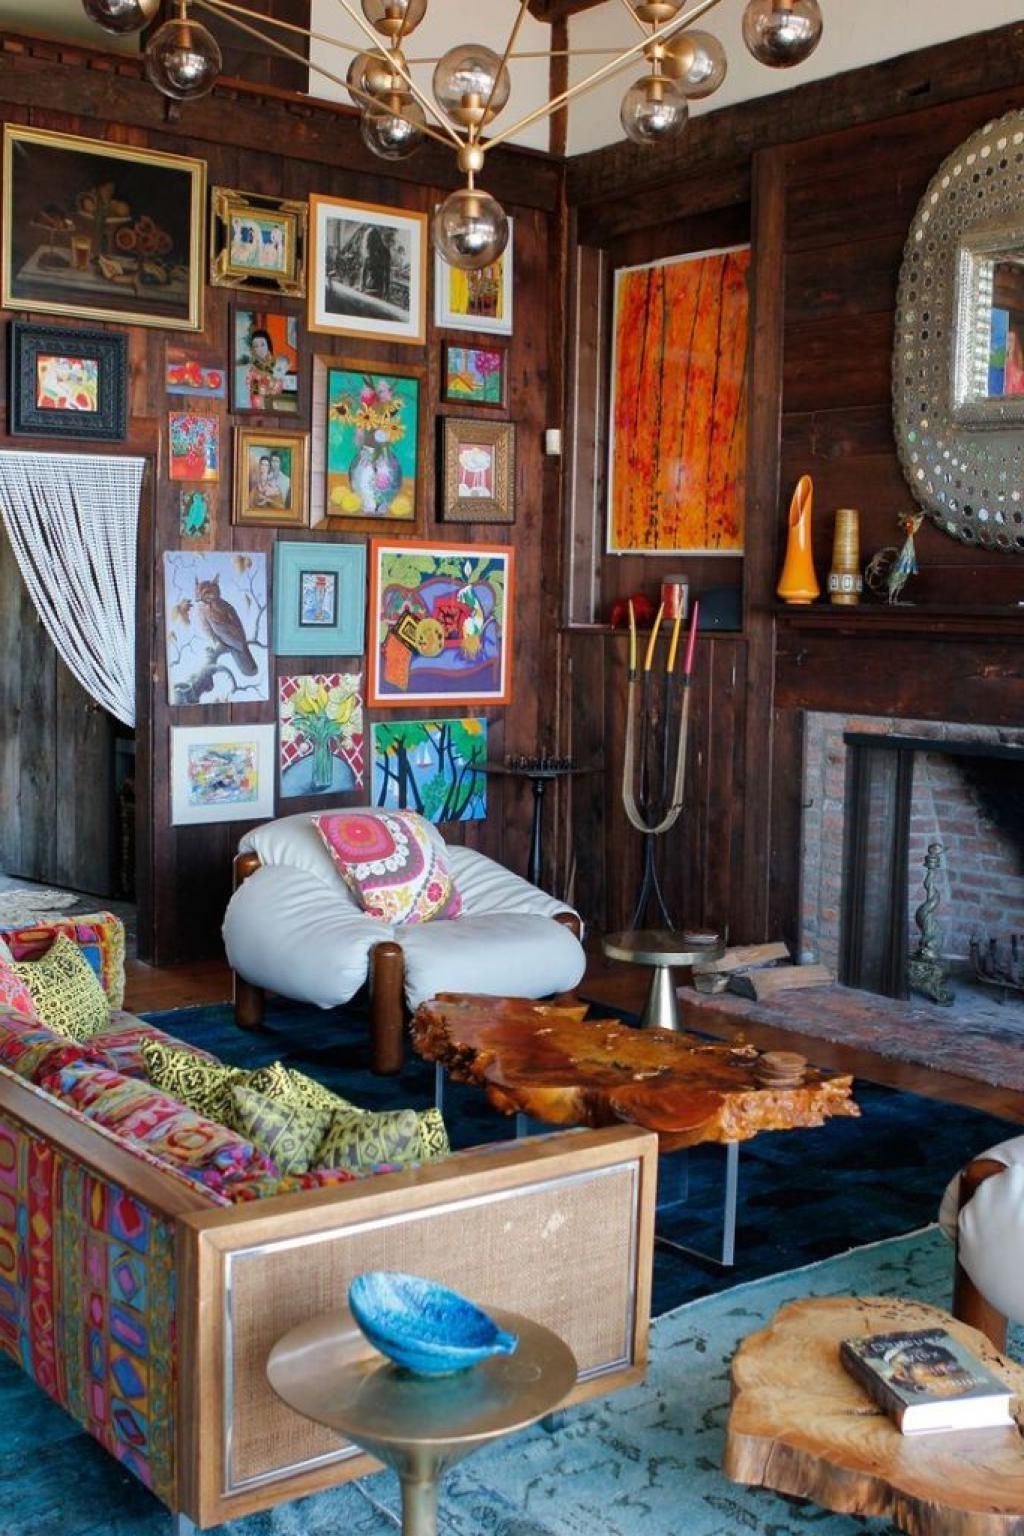 Eclectic Room Design: Rustic Eclectic Room So Colorful And Cute With Frame